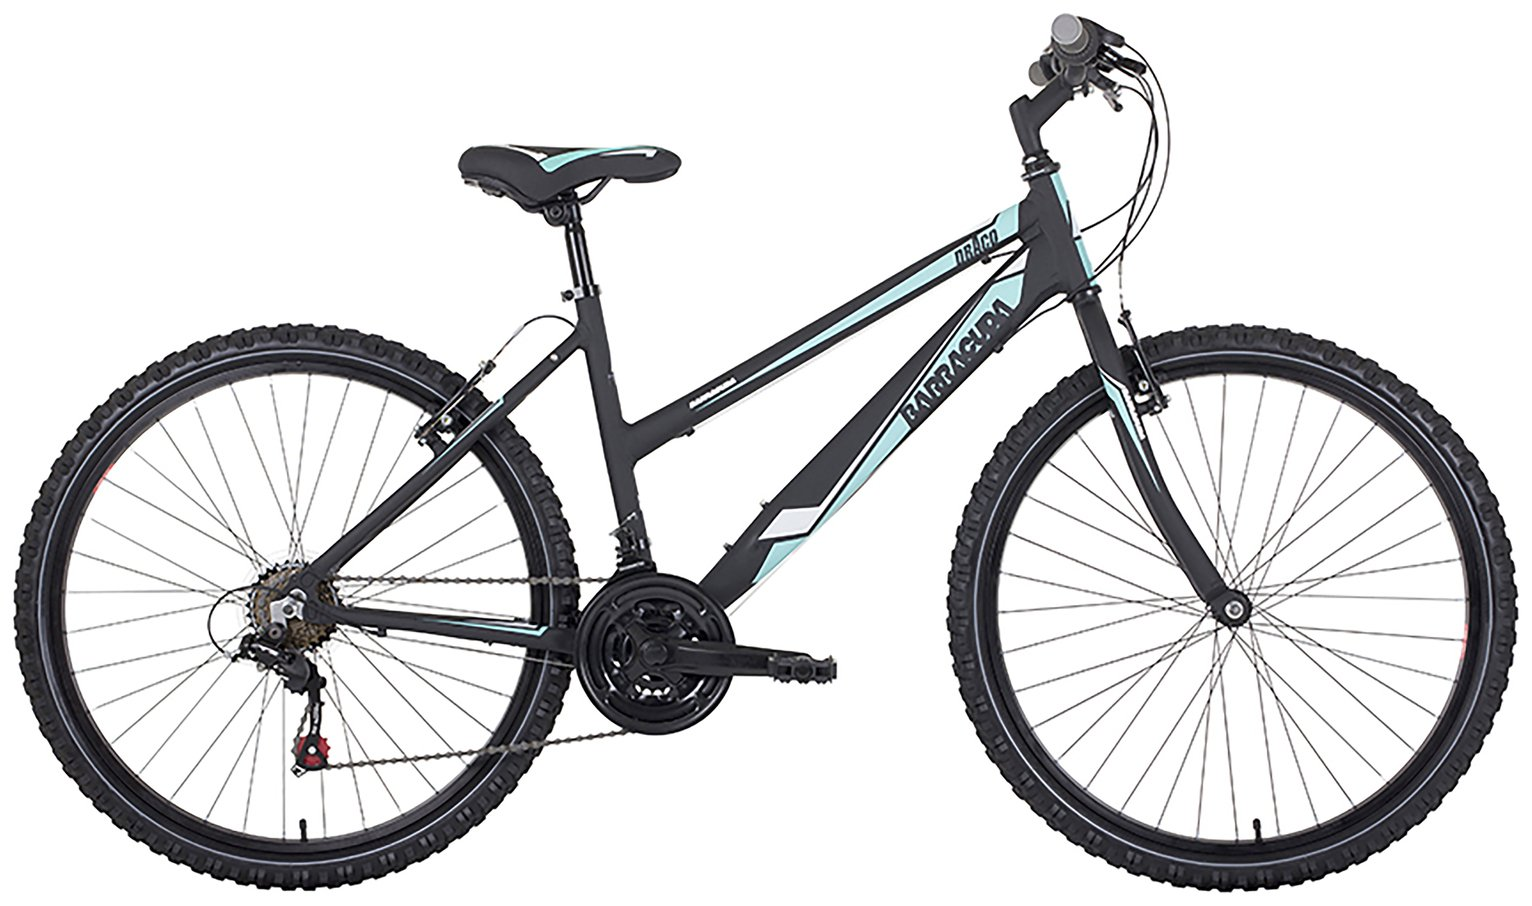 Image of Barracuda Draco 1 15 Inch Black Mountain Bike - Womens.